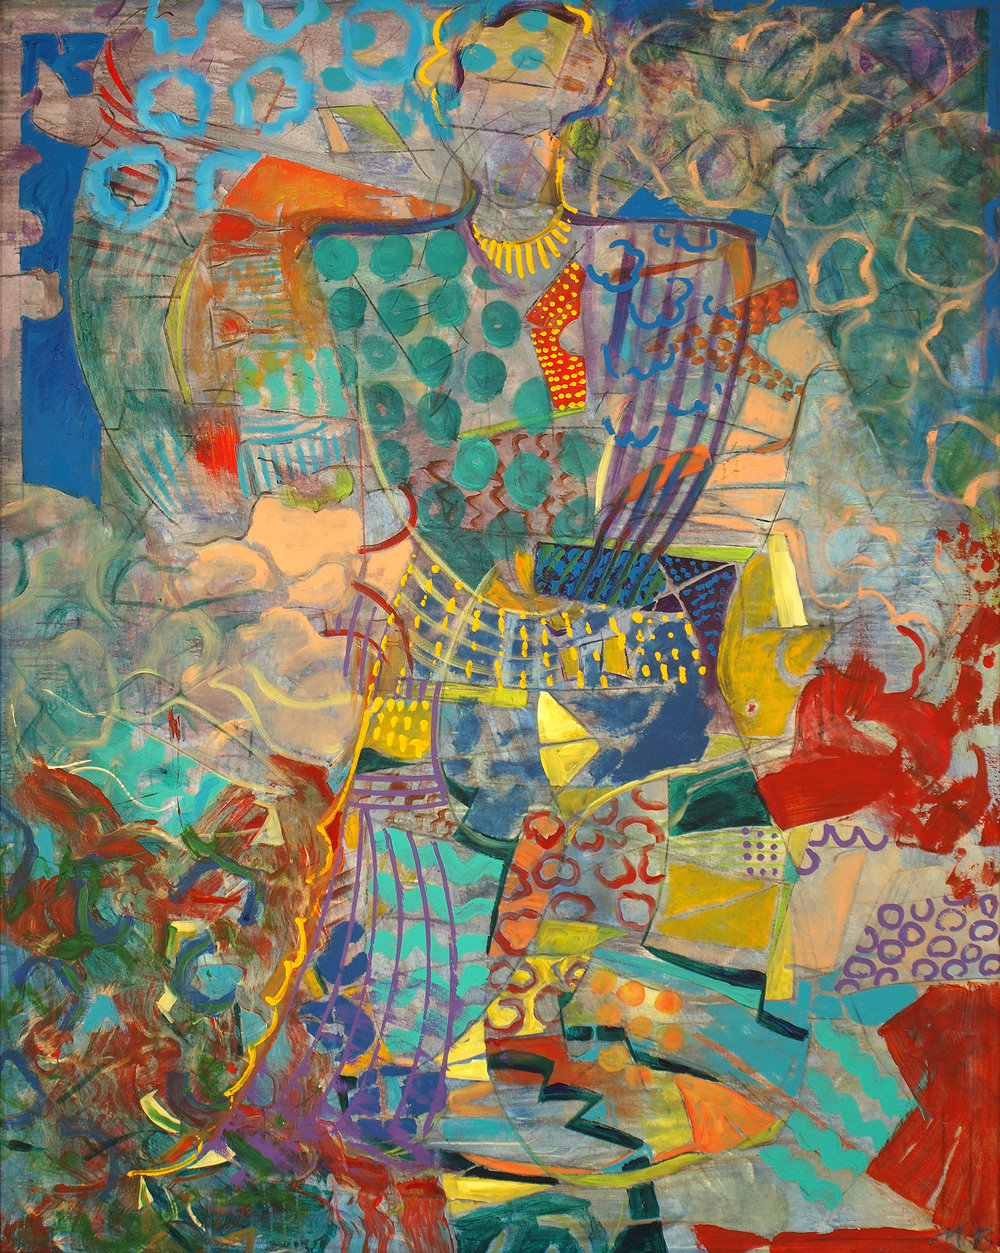 Princely Fantasy (Haiku Series), 2005, 62 x 77.5 inches, Acrylic on canvas